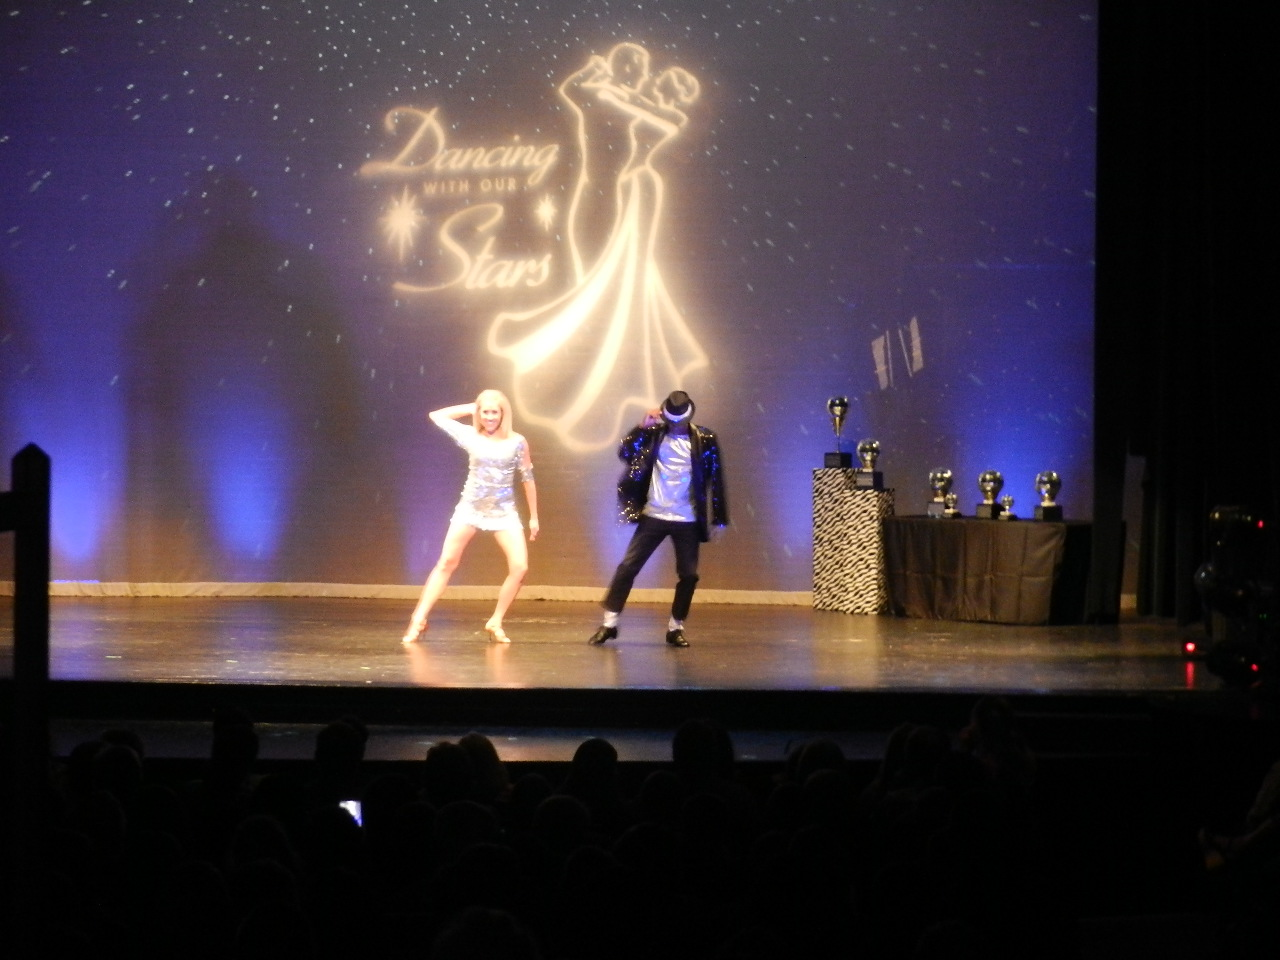 The event raised $65,000 for Sanctuary and the Arts Council